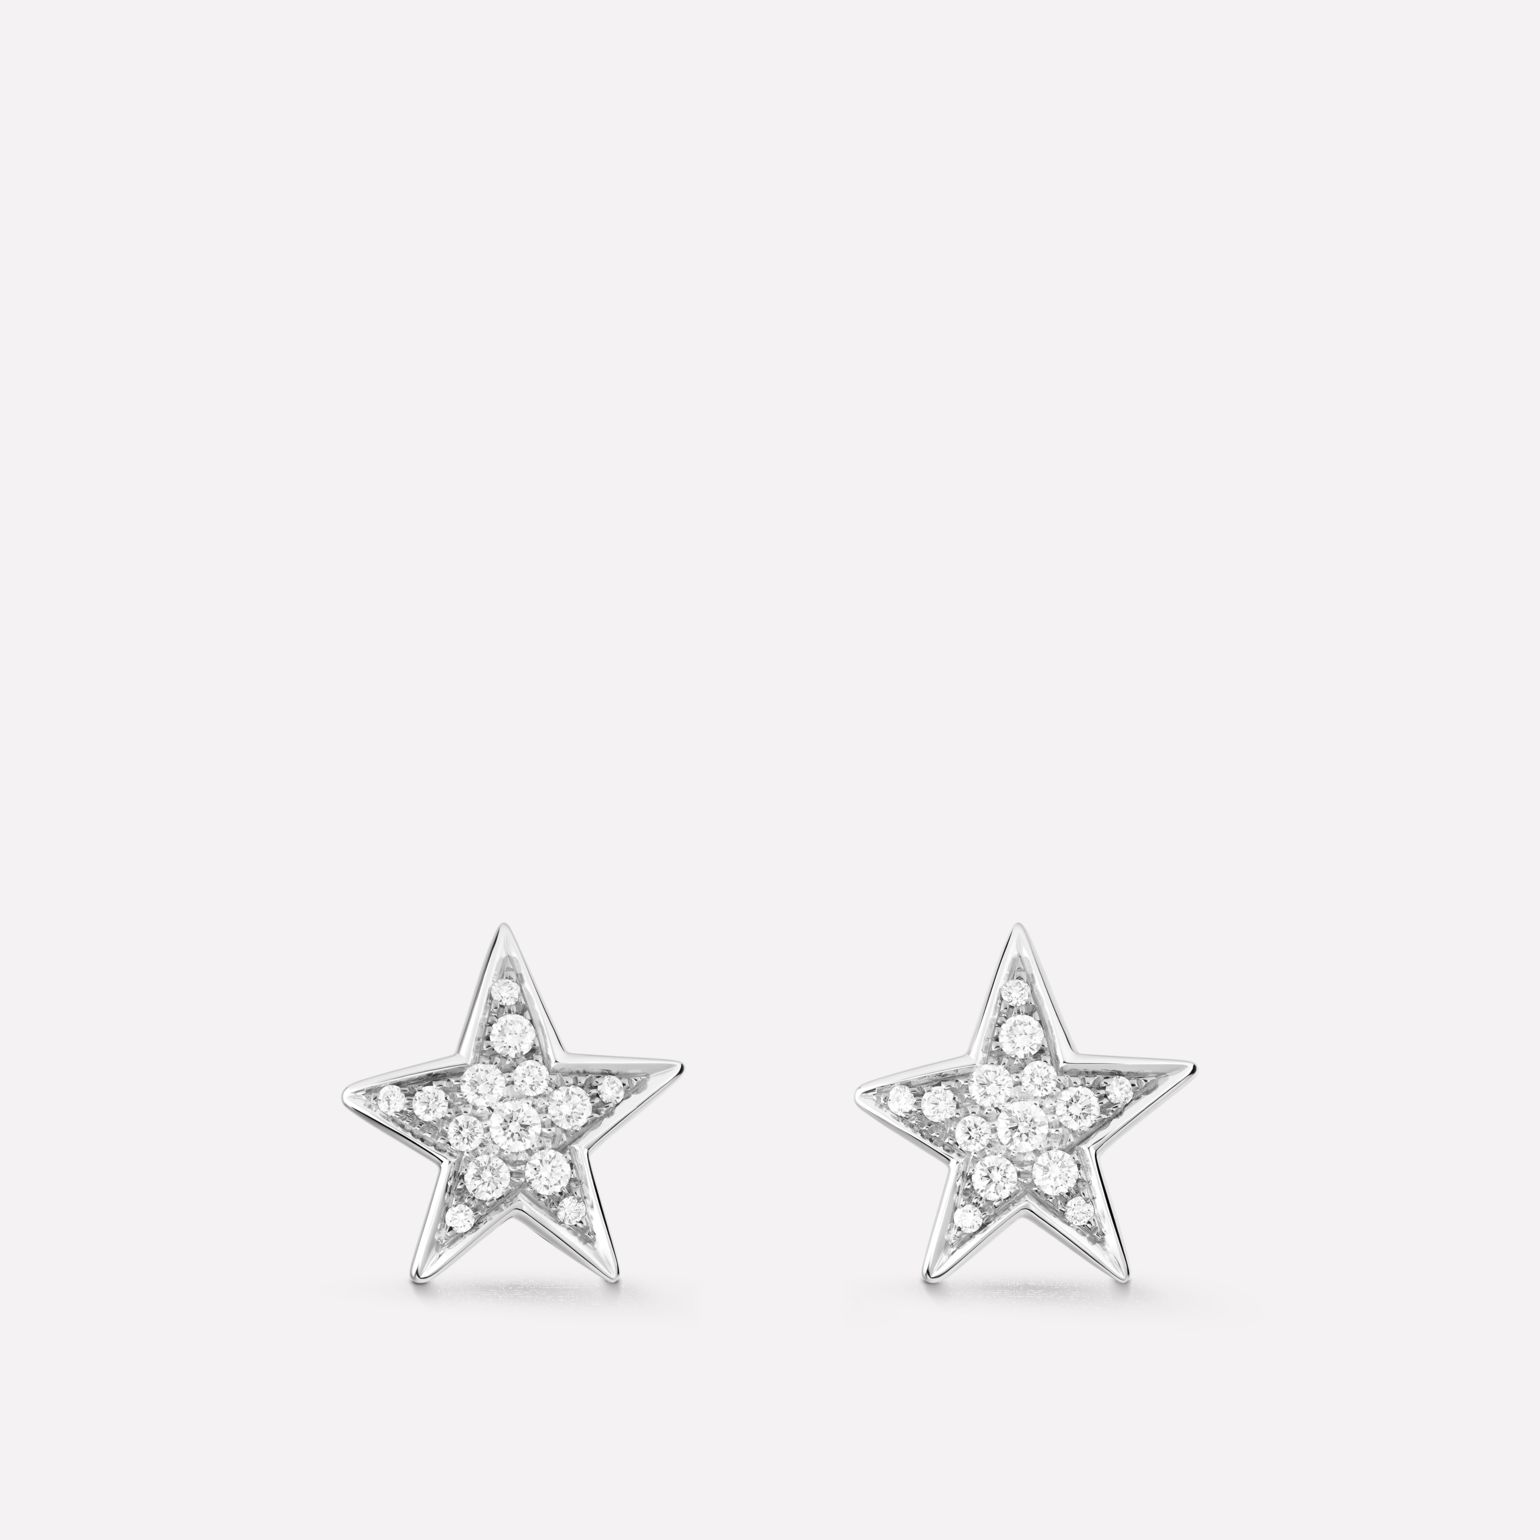 Comète earrings Star earrings, medium version, in 18K white gold and diamonds